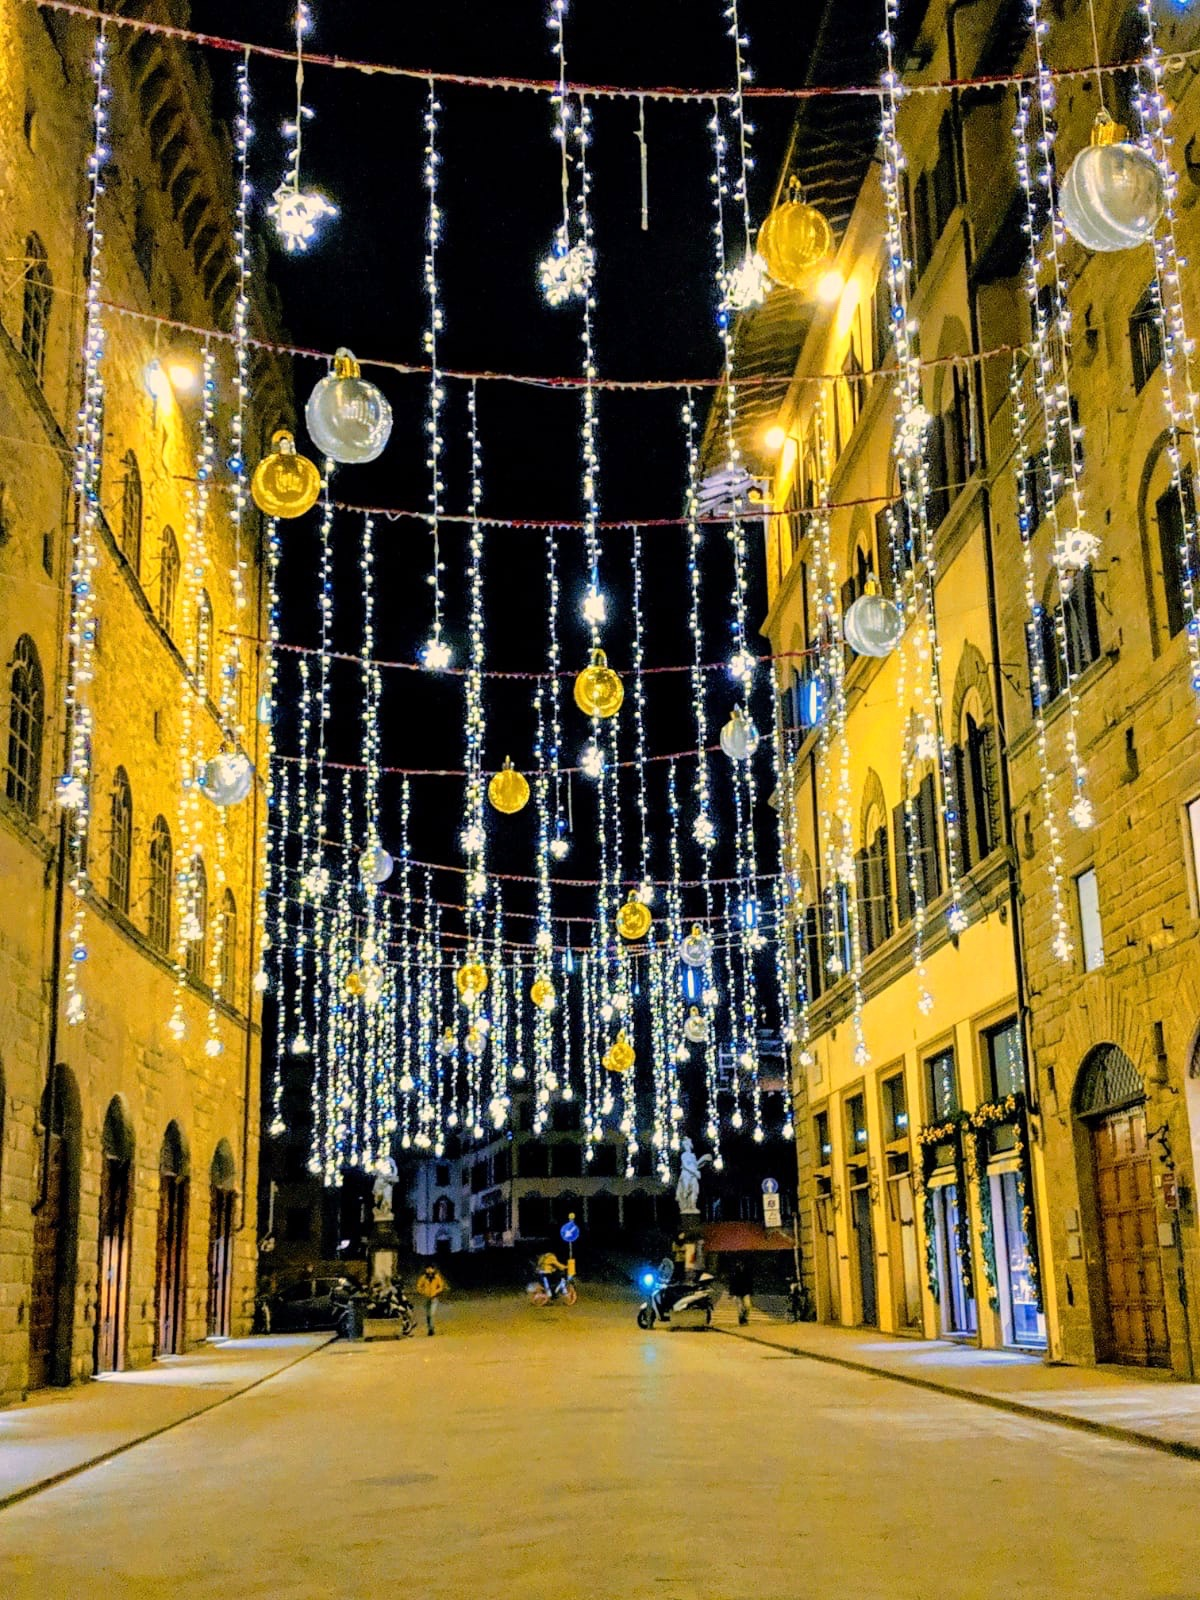 Via Tornabuoni, home to fabulous luxury fashion houses, such as Gucci, Ferragamo, Prada, and many more. Photo taken by Nick.